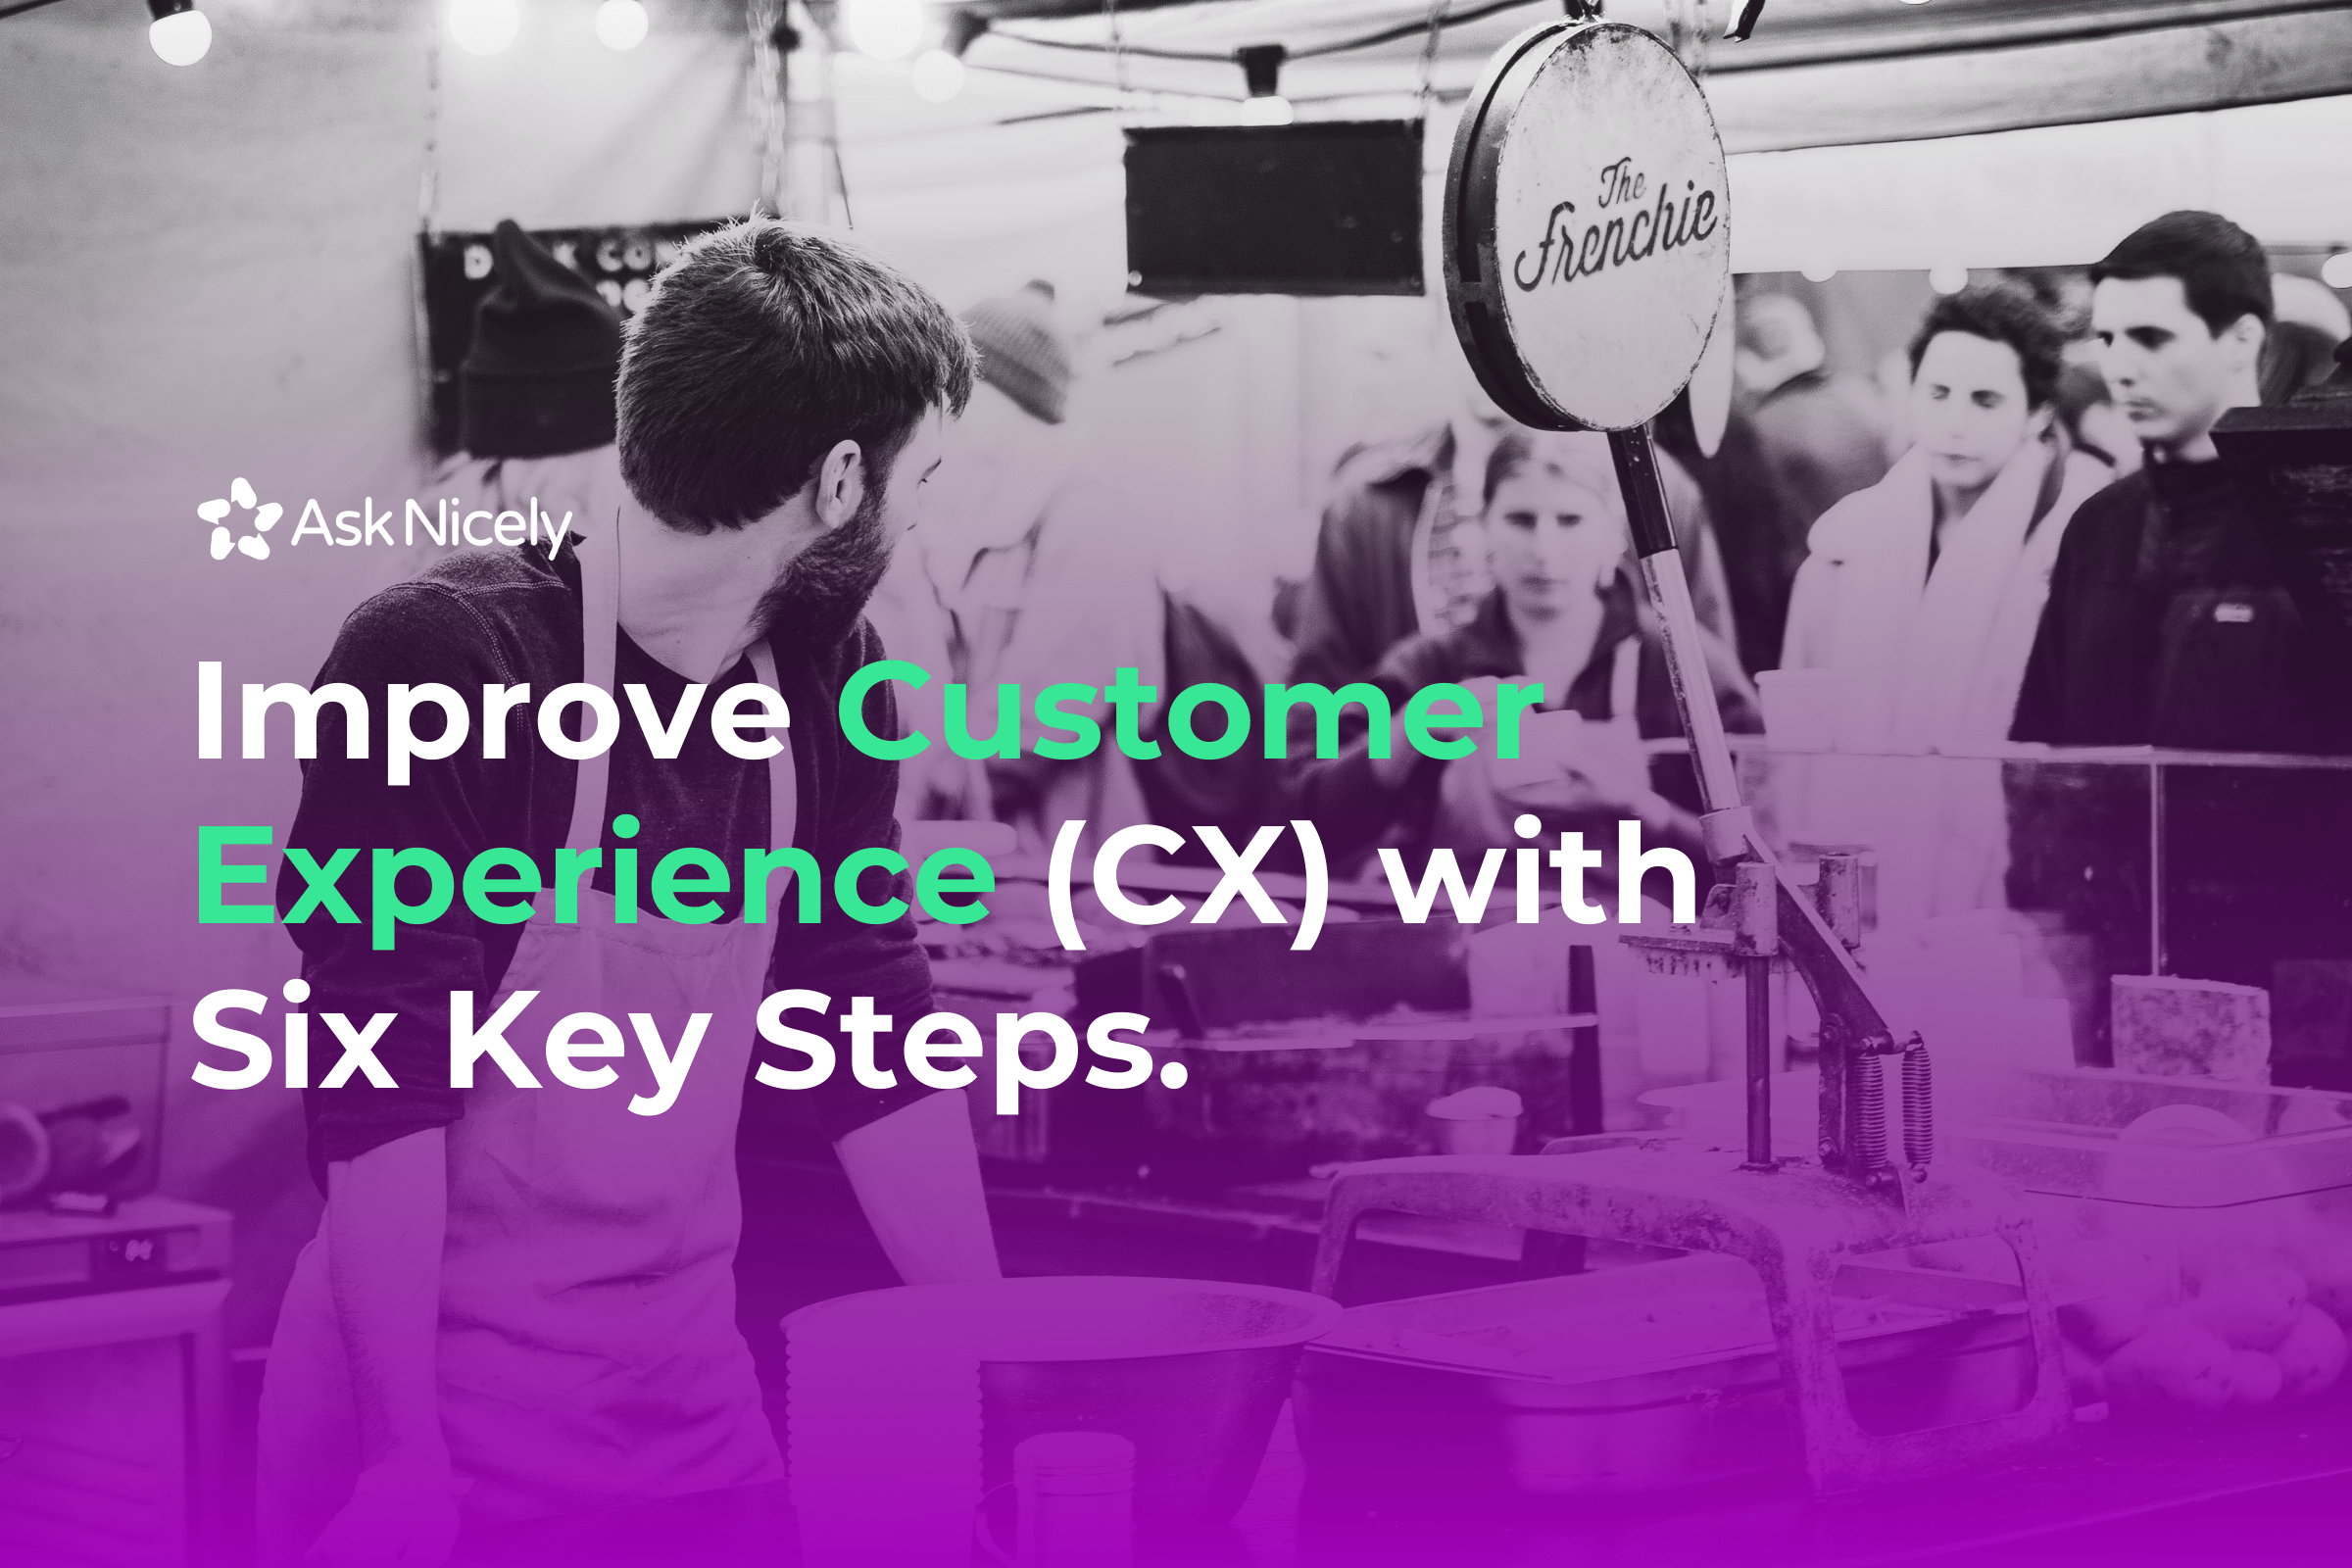 Improve Customer Experience (CX) with Six Key Steps